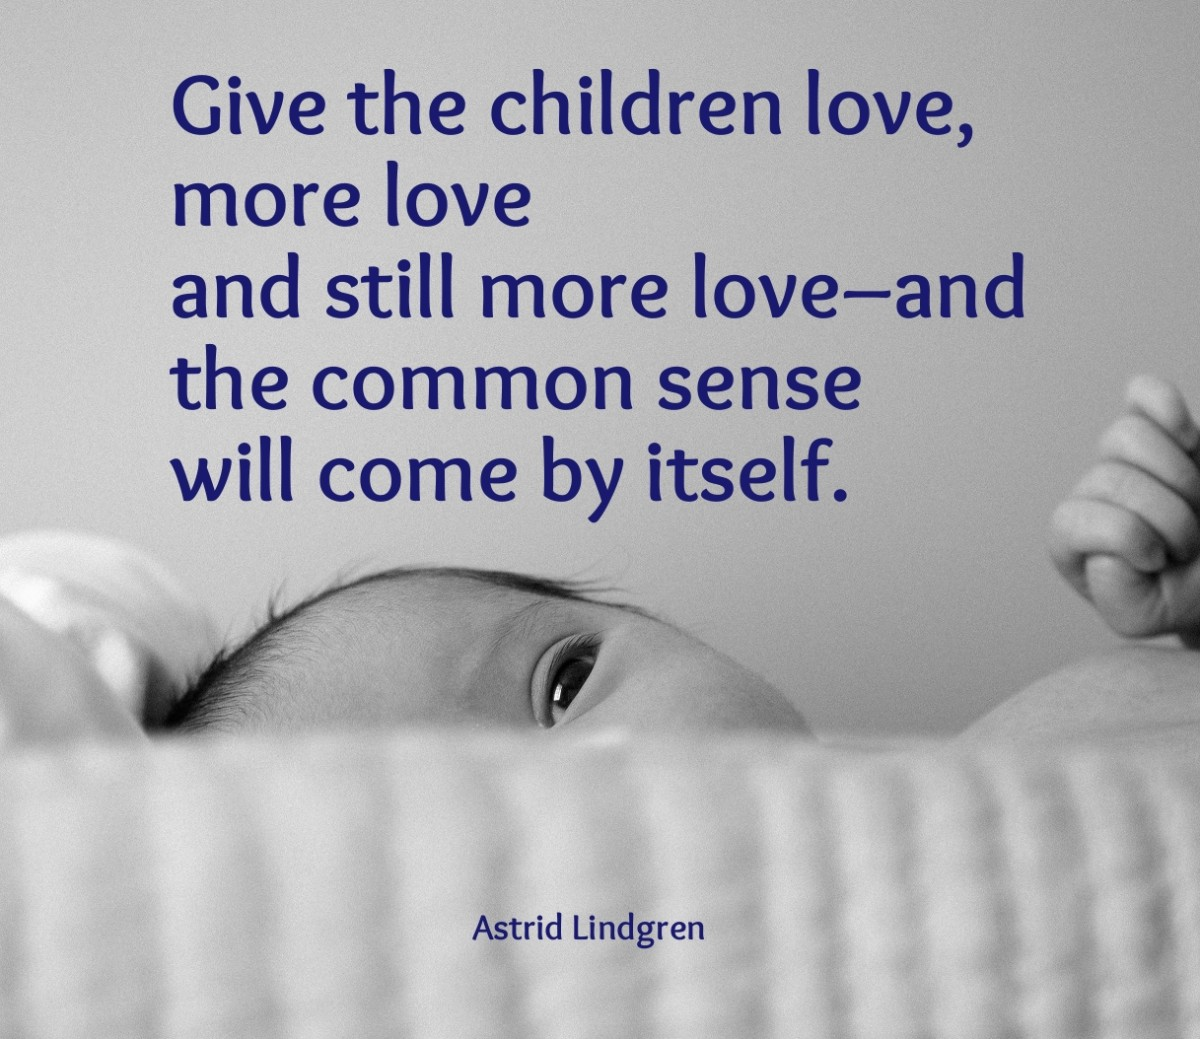 Give the children love. (Photo by Charles)